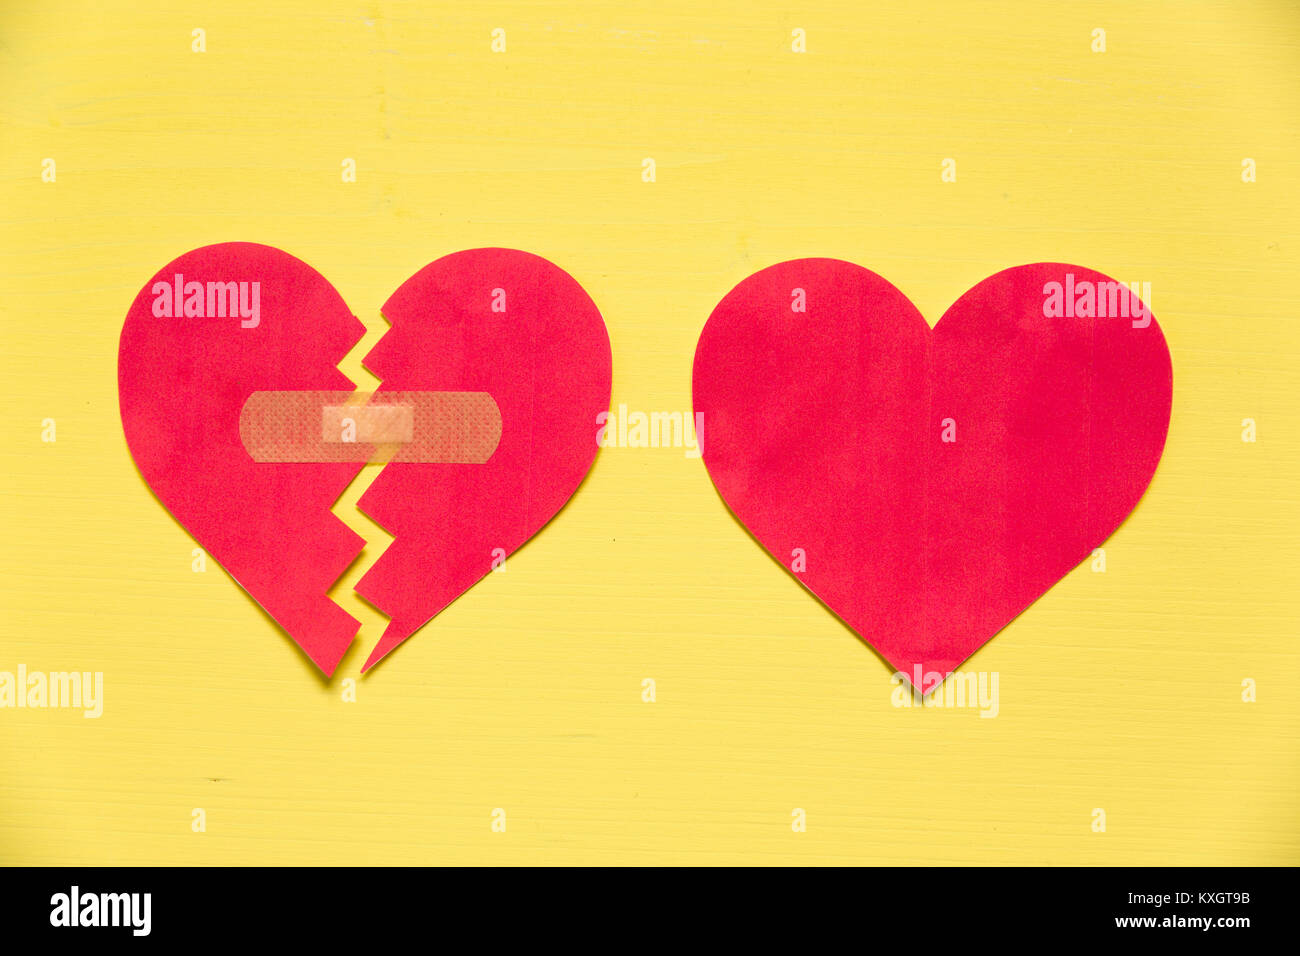 Broken paper heart with patch next to the whole paper heart on yellow background. Rebuild relationship concept - Stock Image